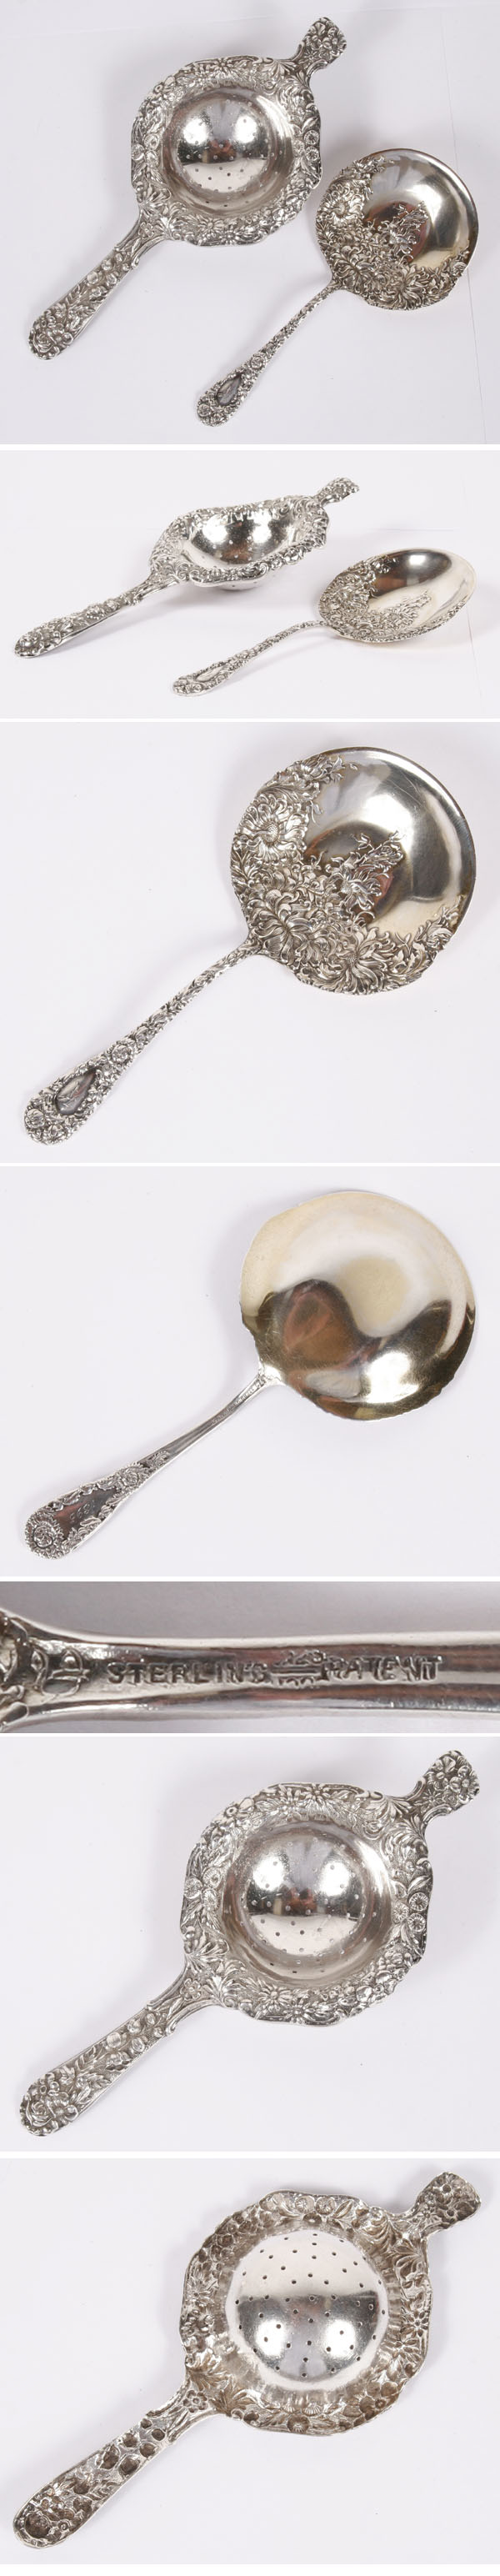 Sterling Silver Repousse Tea Strainer Berry Spoon | Antique Helper